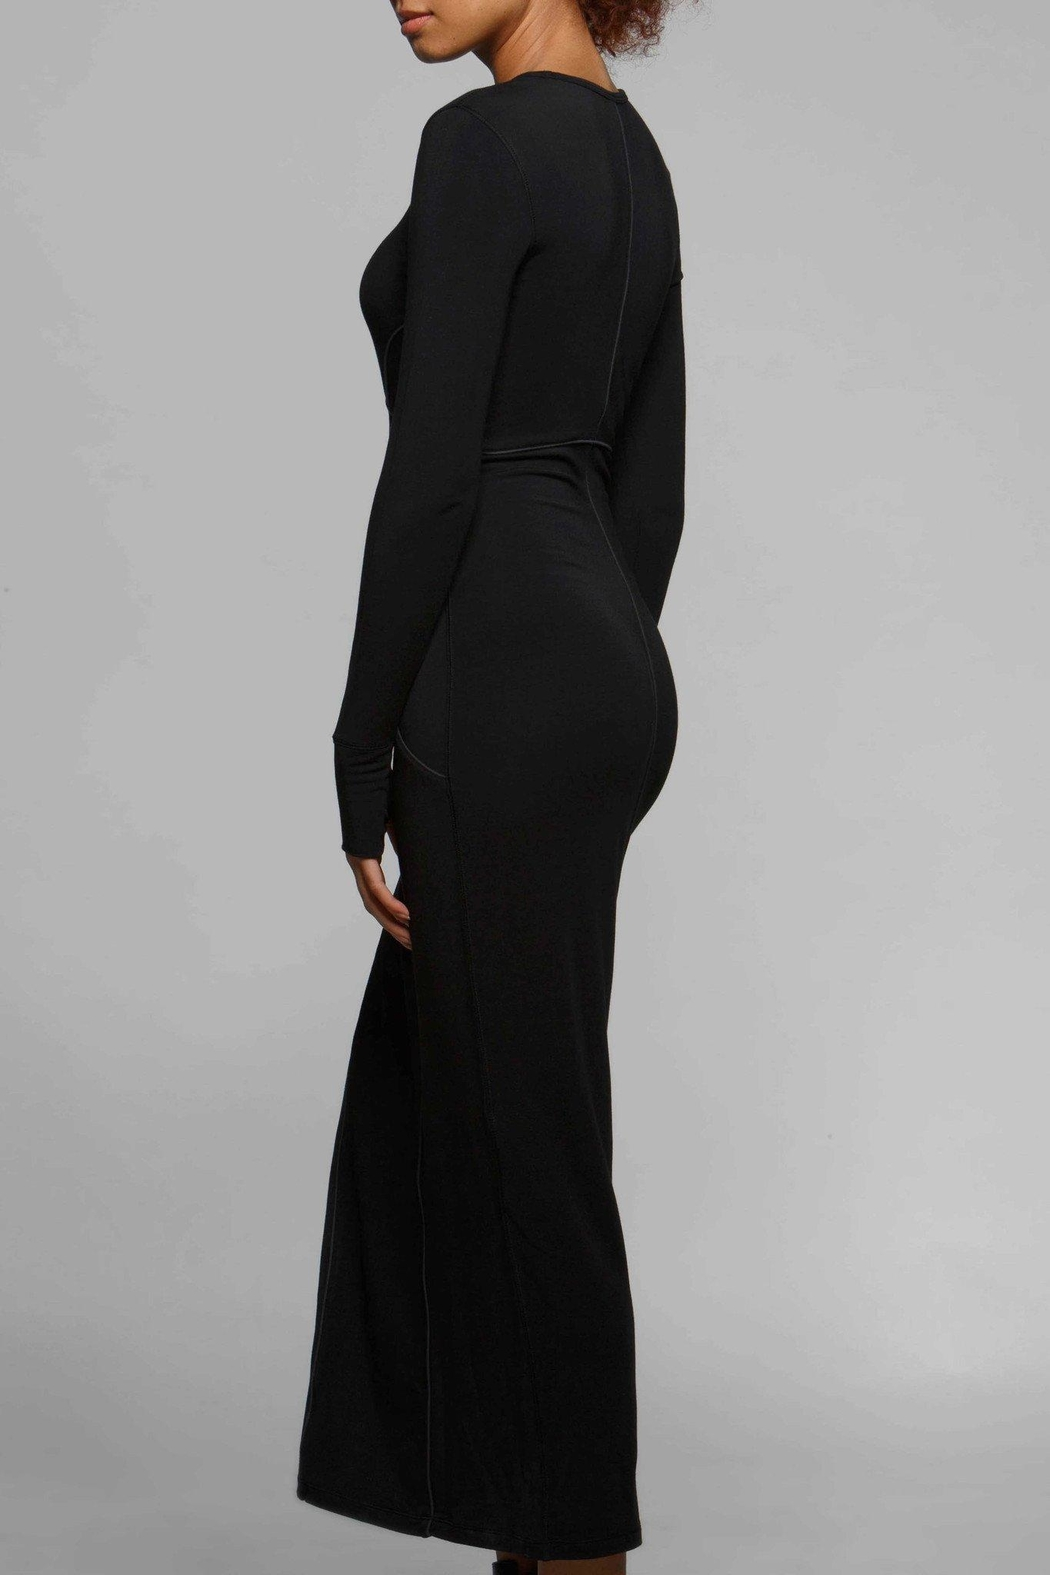 Titika Active Couture Camilia Maxi Dress - Front Full Image